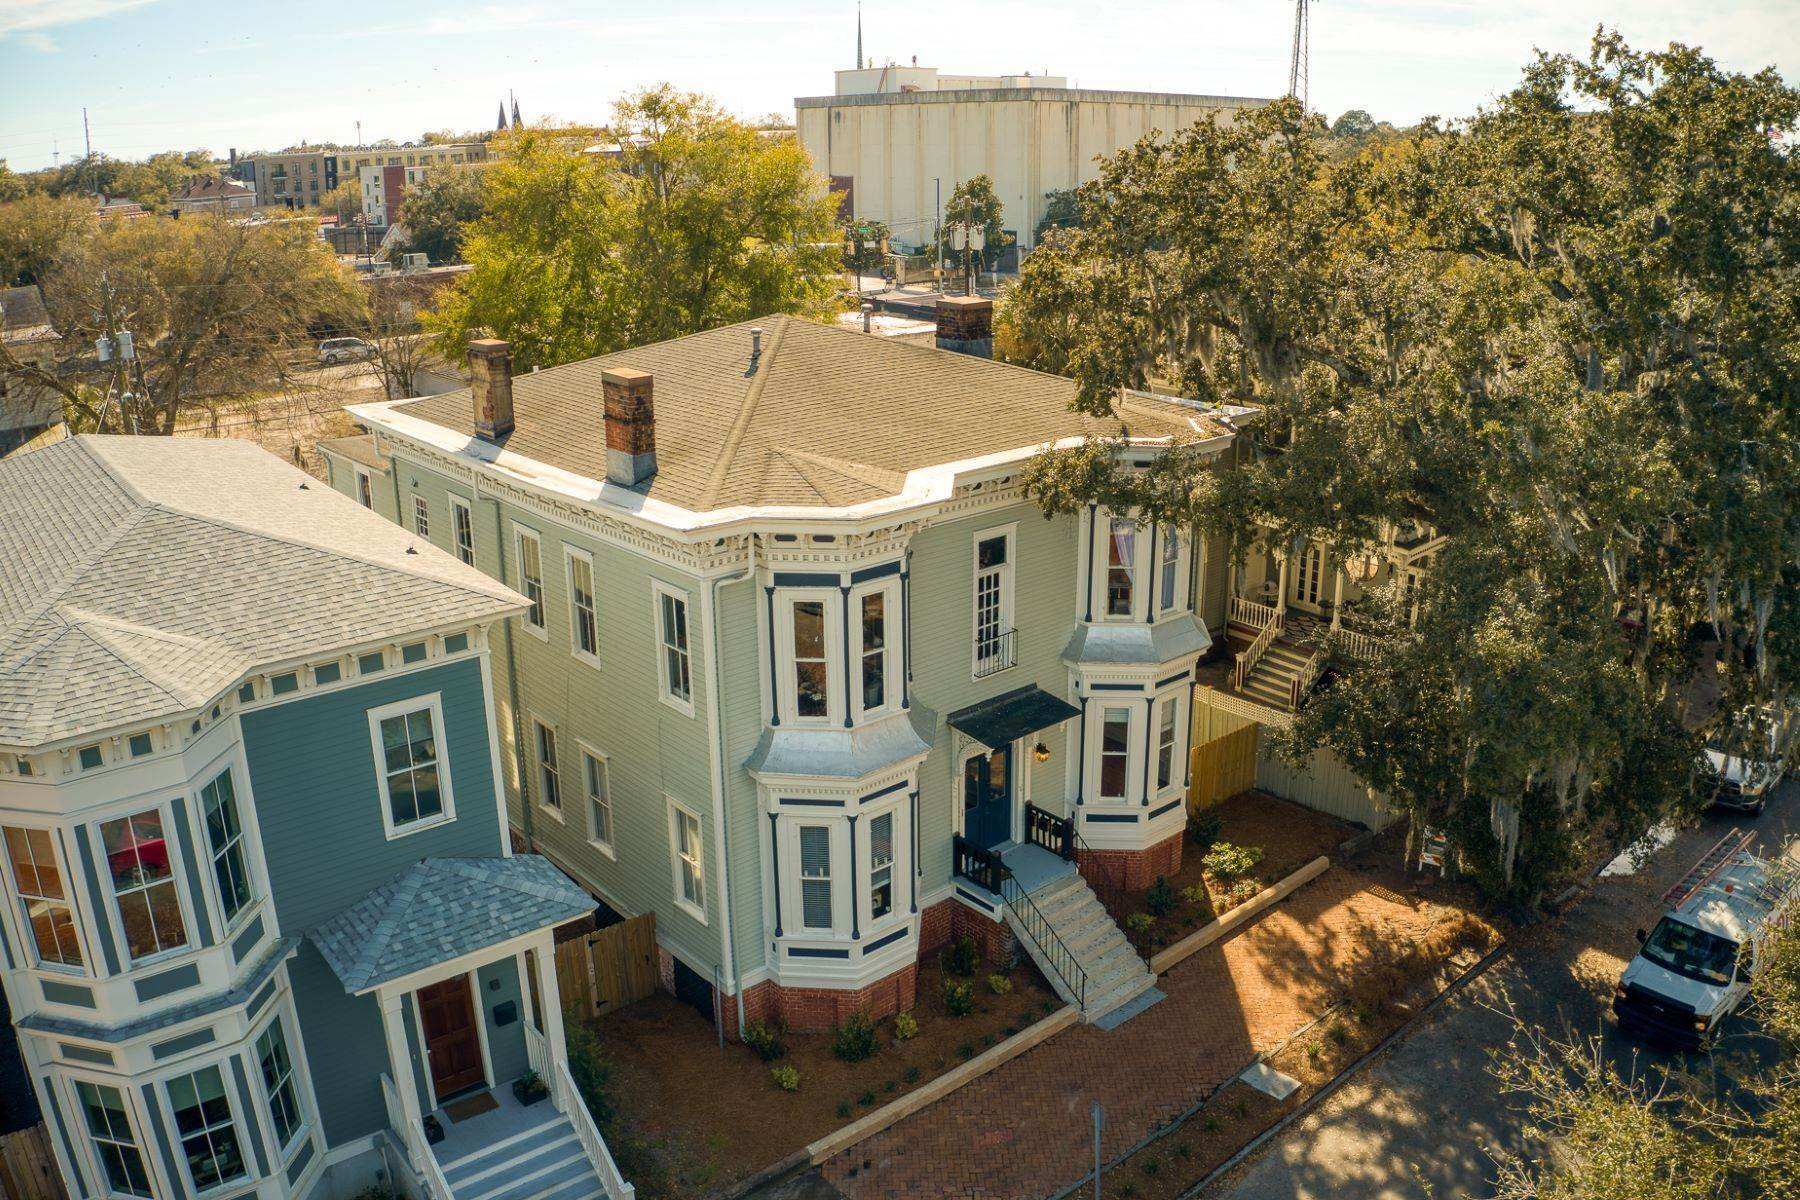 16. Property for Sale at Stunning Six Unit Victorian Apartment Building Near Forsyth Park 109 E Duffy Street Savannah, Georgia 31401 United States